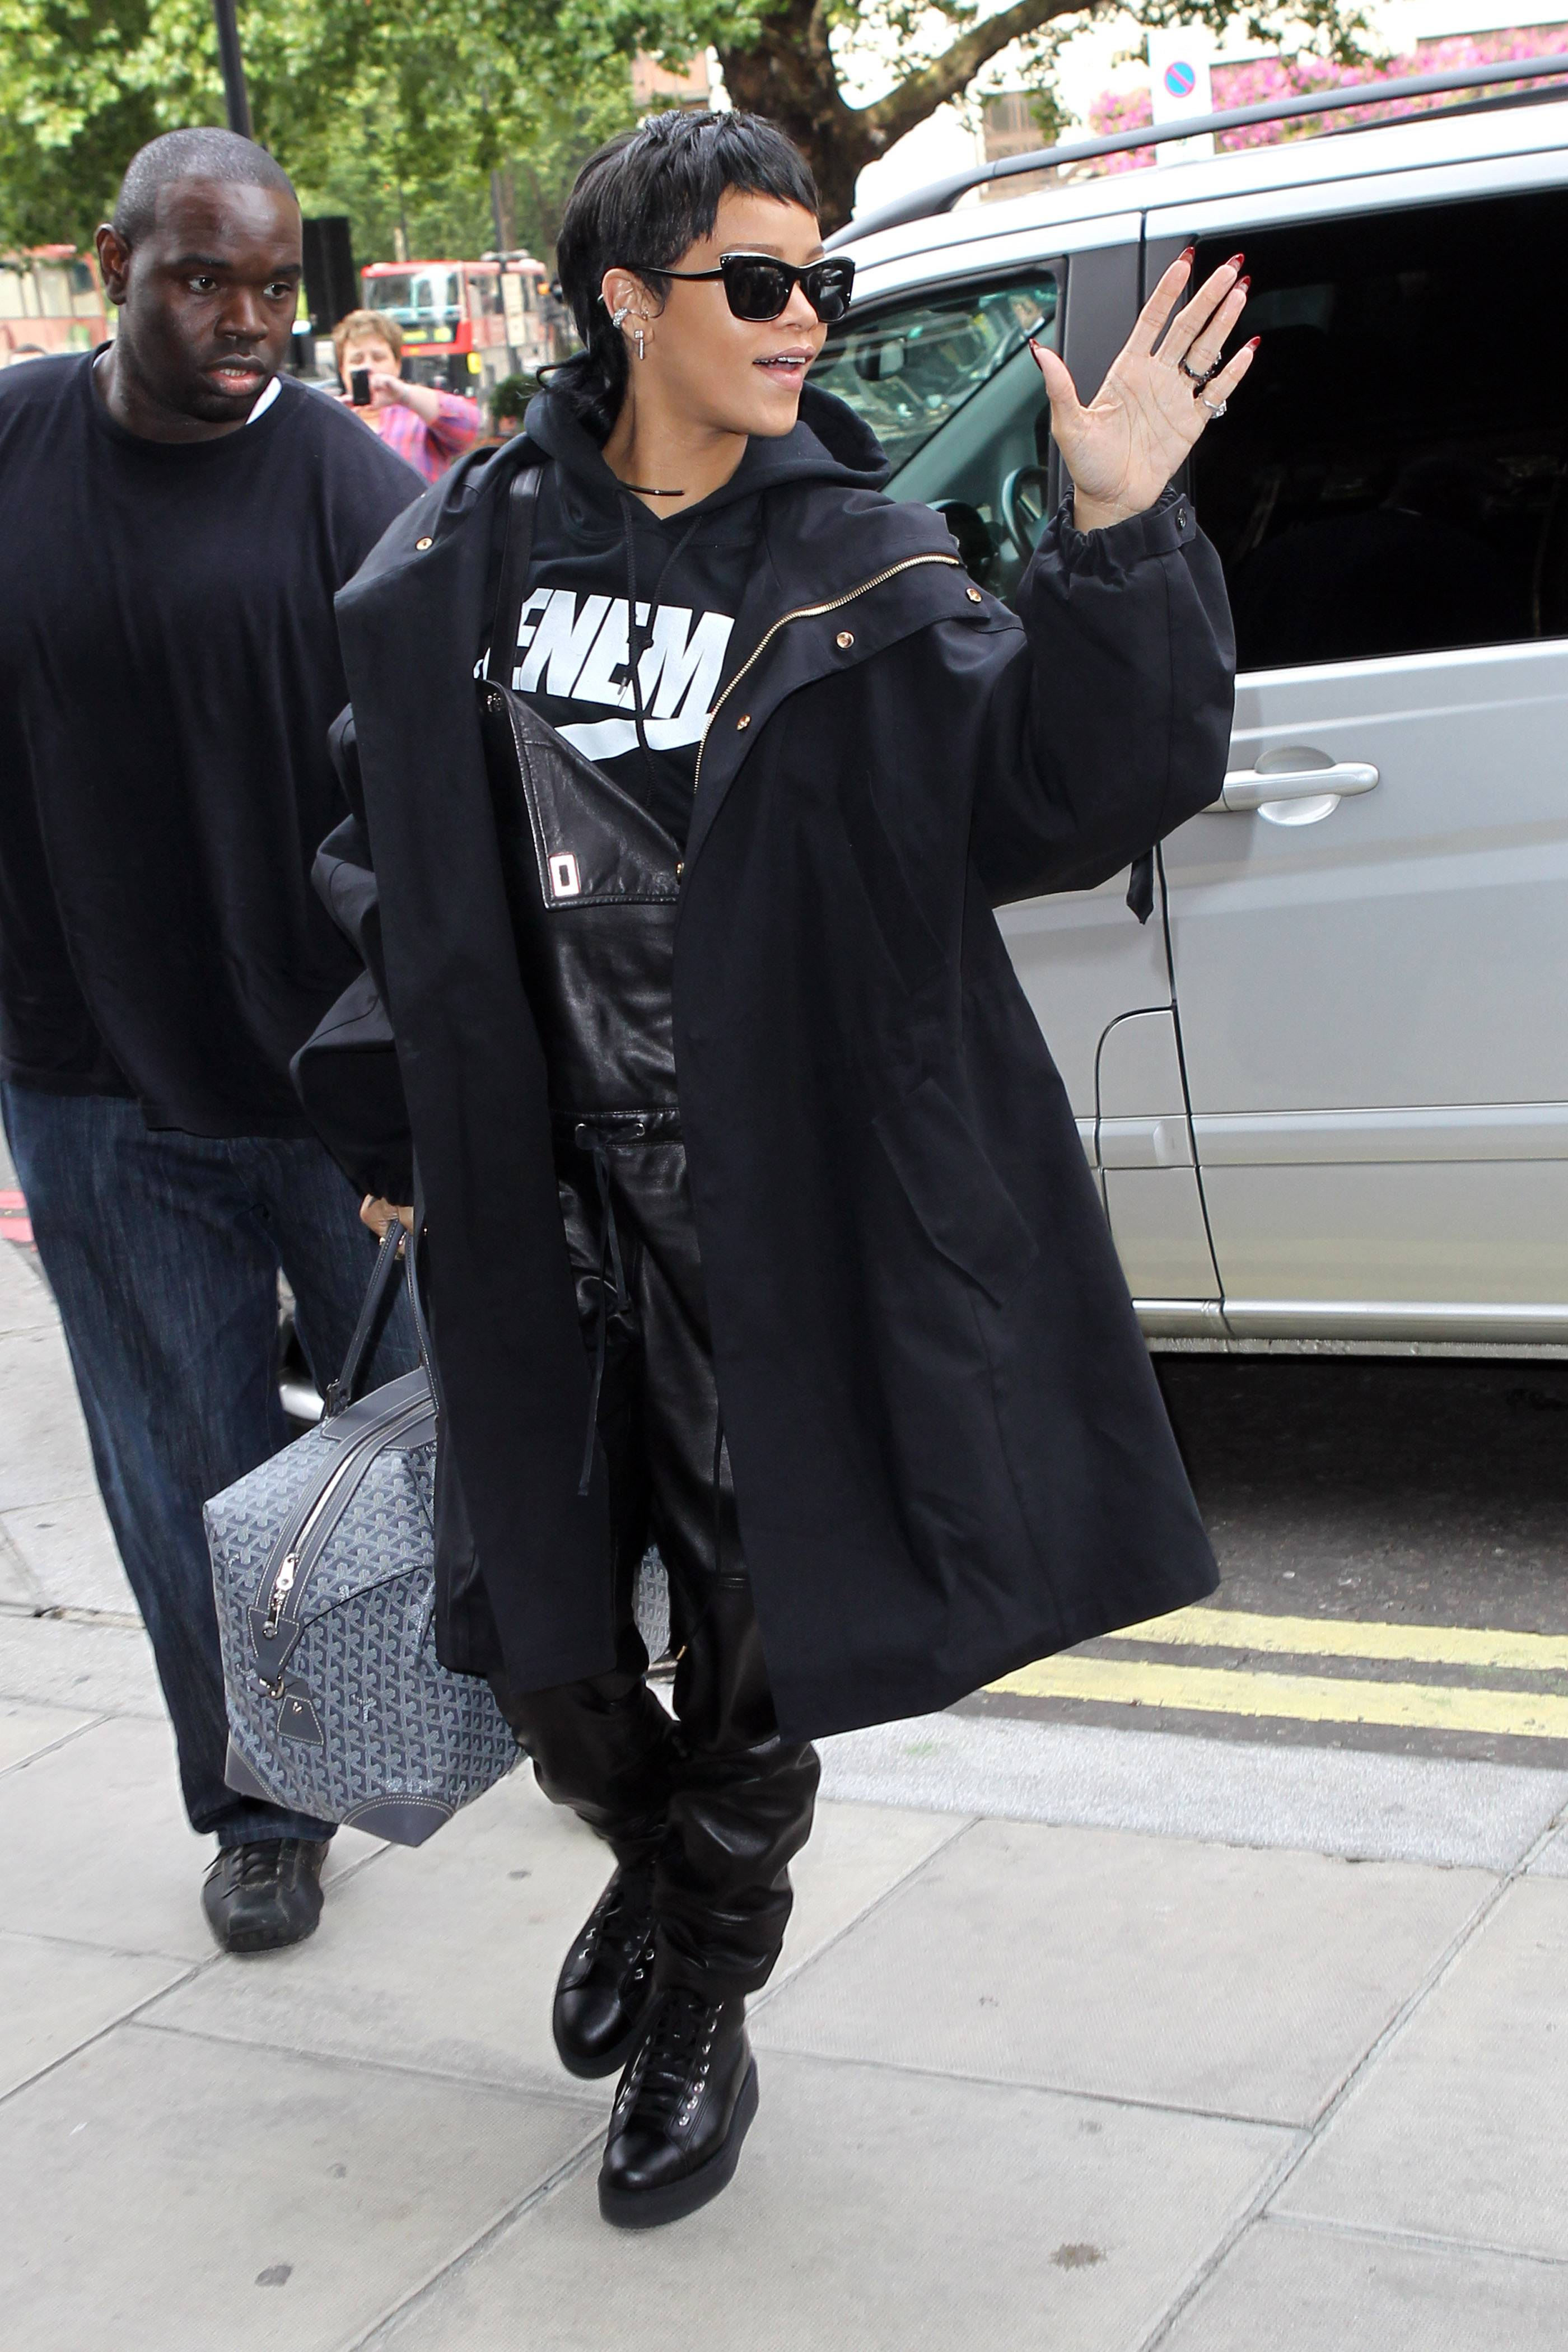 """#RihannaforRiverIsland Royalty - Could Rih Rih be the princess of England? Today she launches her Fall clothing line for River Island. This is what she tweeted: """"UK Navy, I'm in London today launching the Autumn #RihannaforRiverIsland range,"""" she tweeted before her arrival.""""(Photo: Neil P. Mockford/FilmMagic/Getty Images)"""